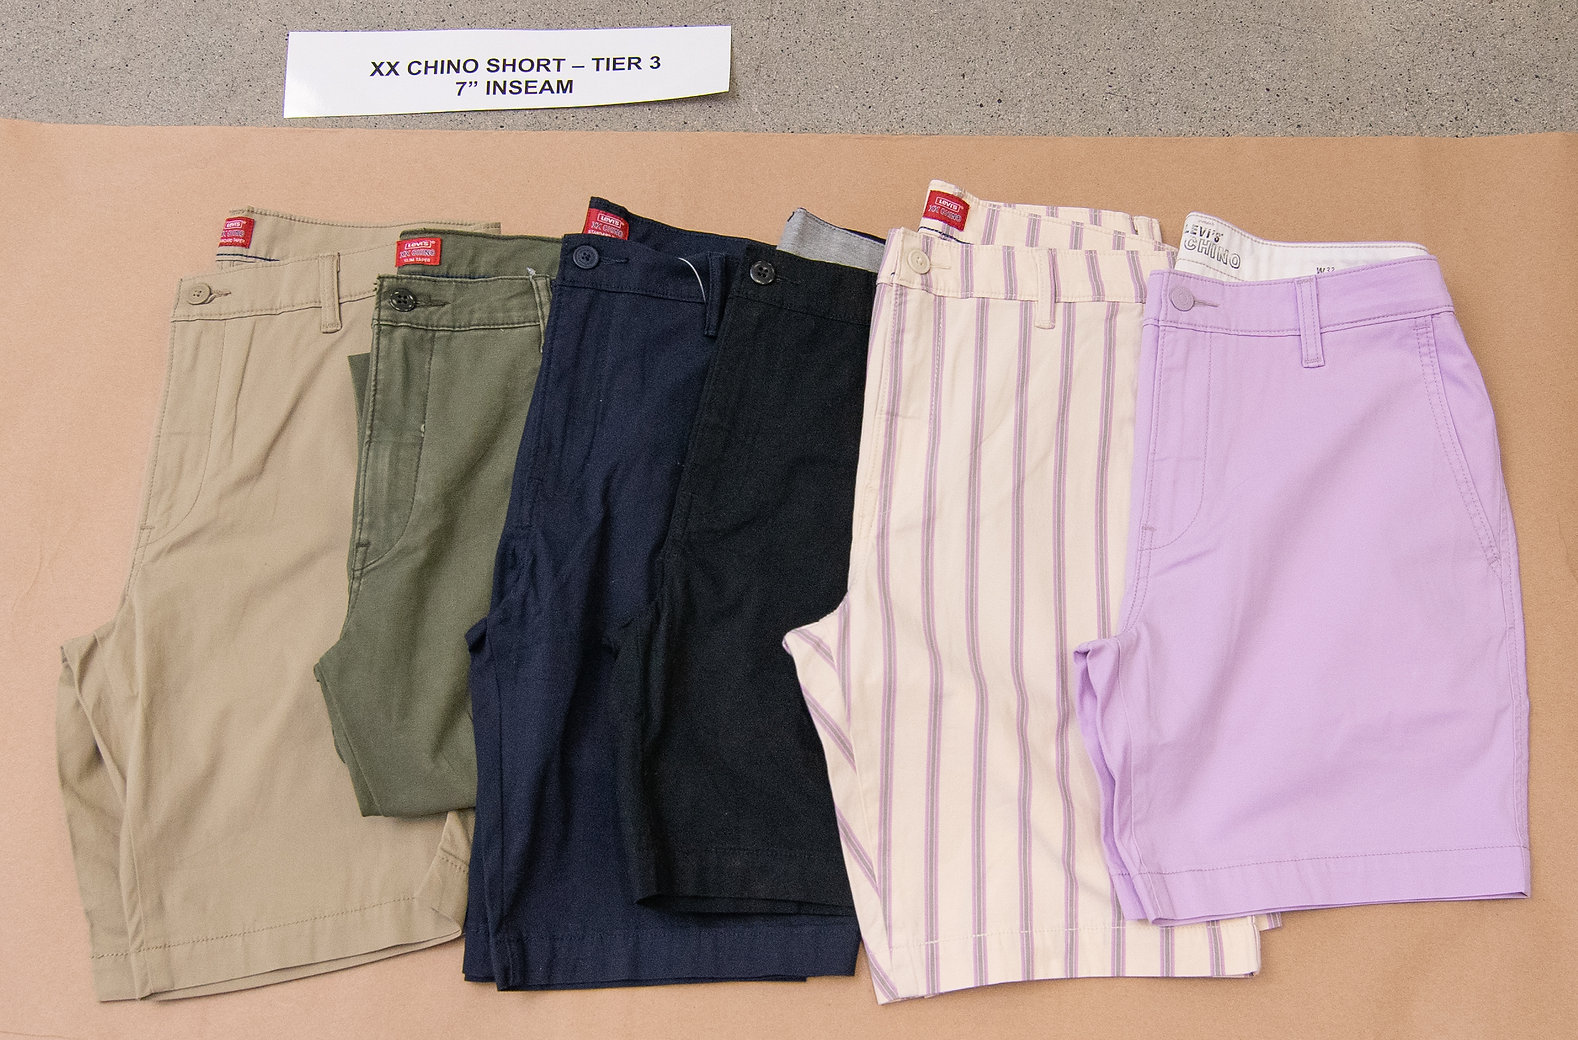 MB_XX CHINO SHORT - TIER 3 7%22 INSEAM.j